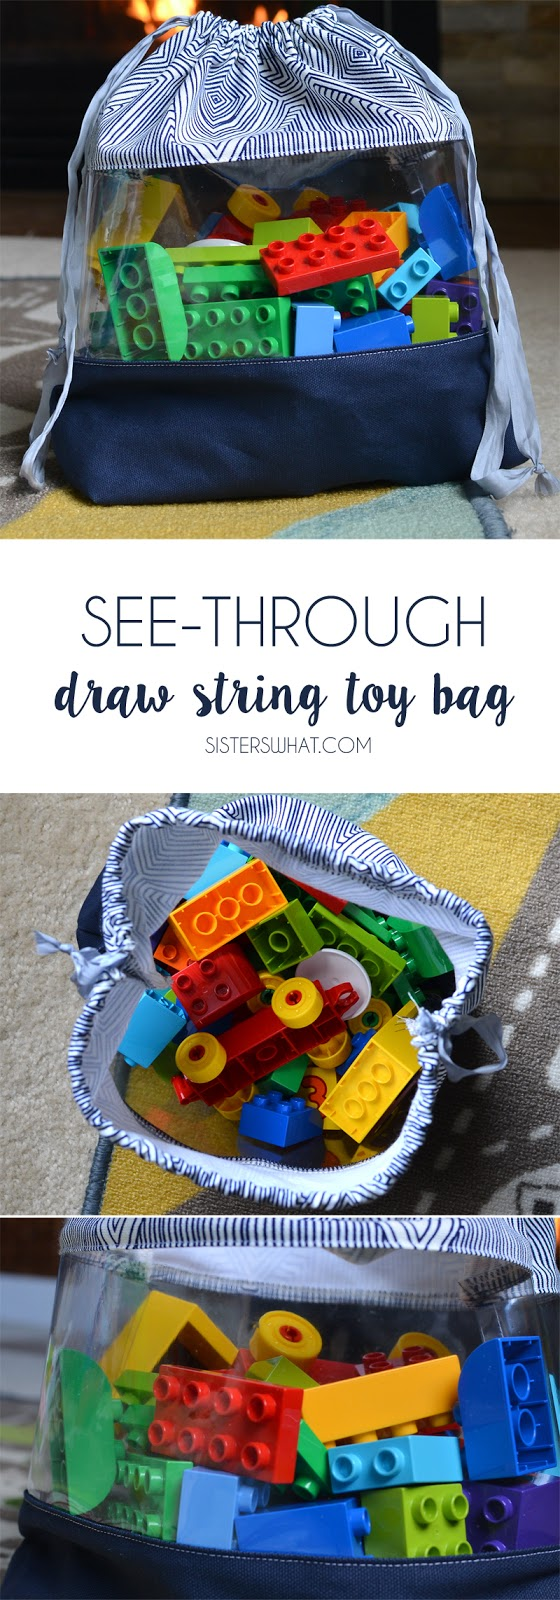 see through drawstring toy bag...perfect for organizing toys!!